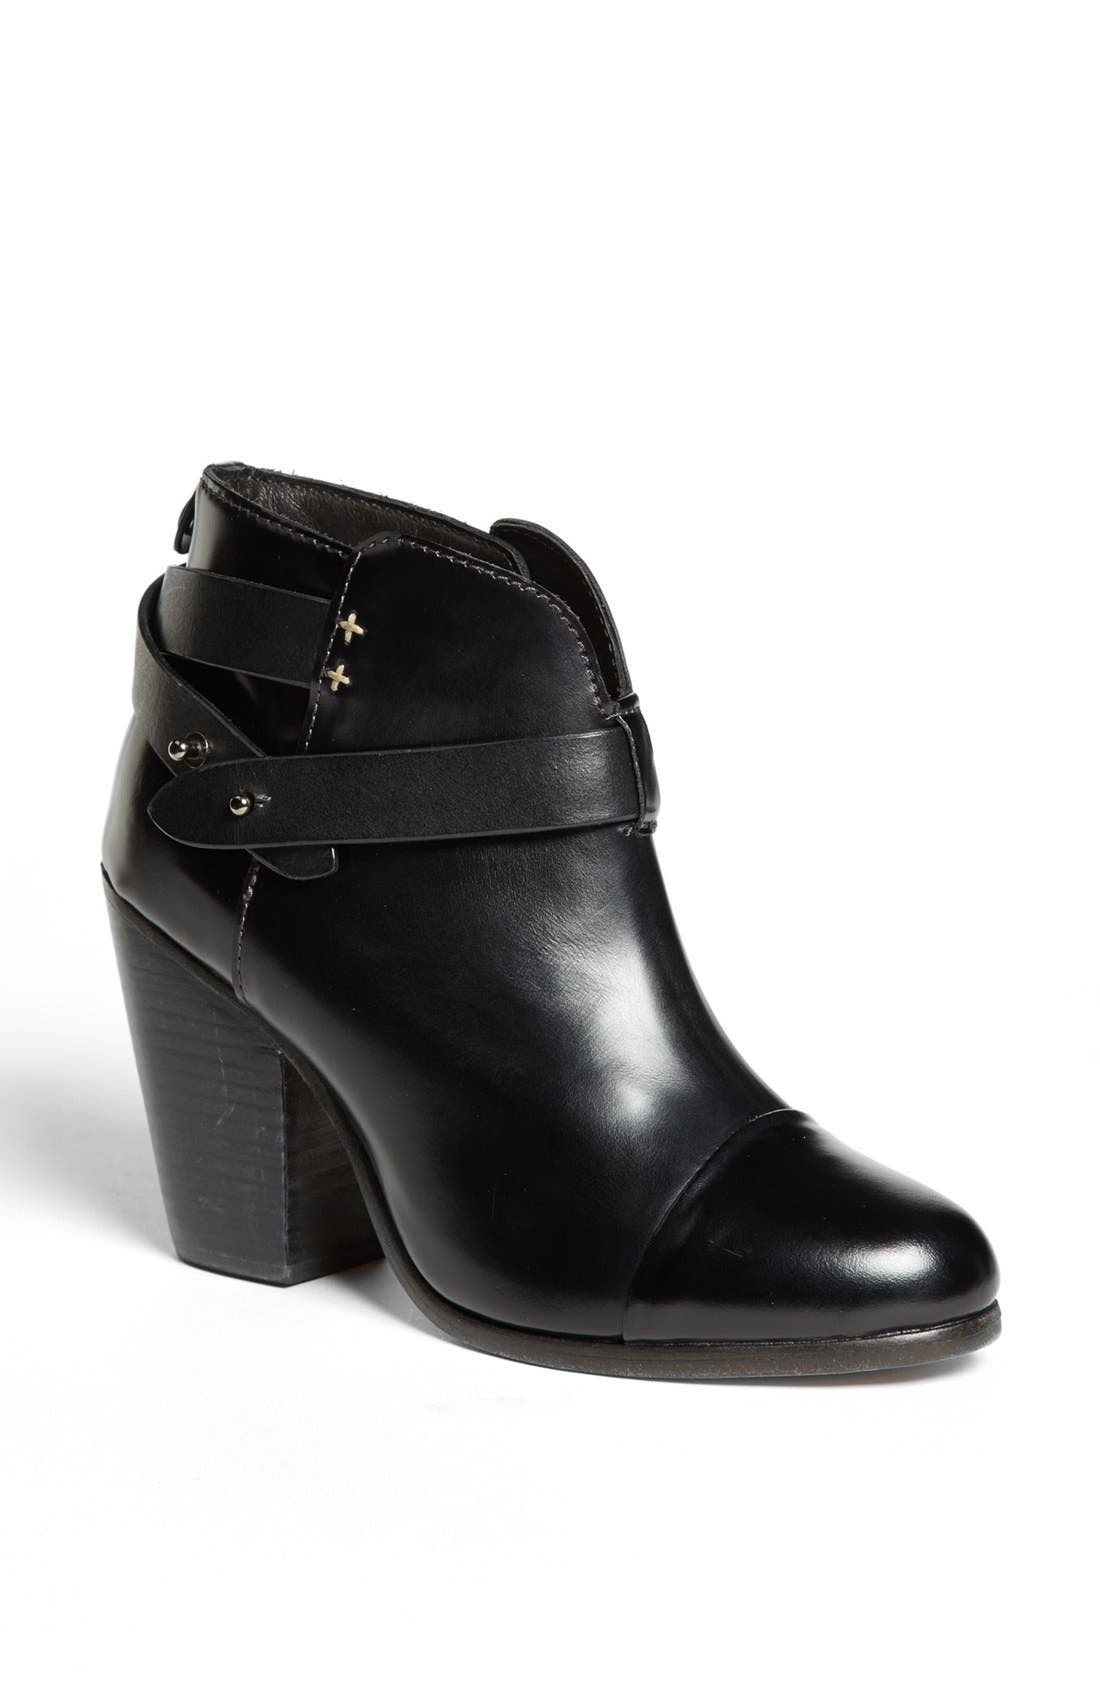 RAG & BONE 'Harrow' Bootie, Main, color, 001